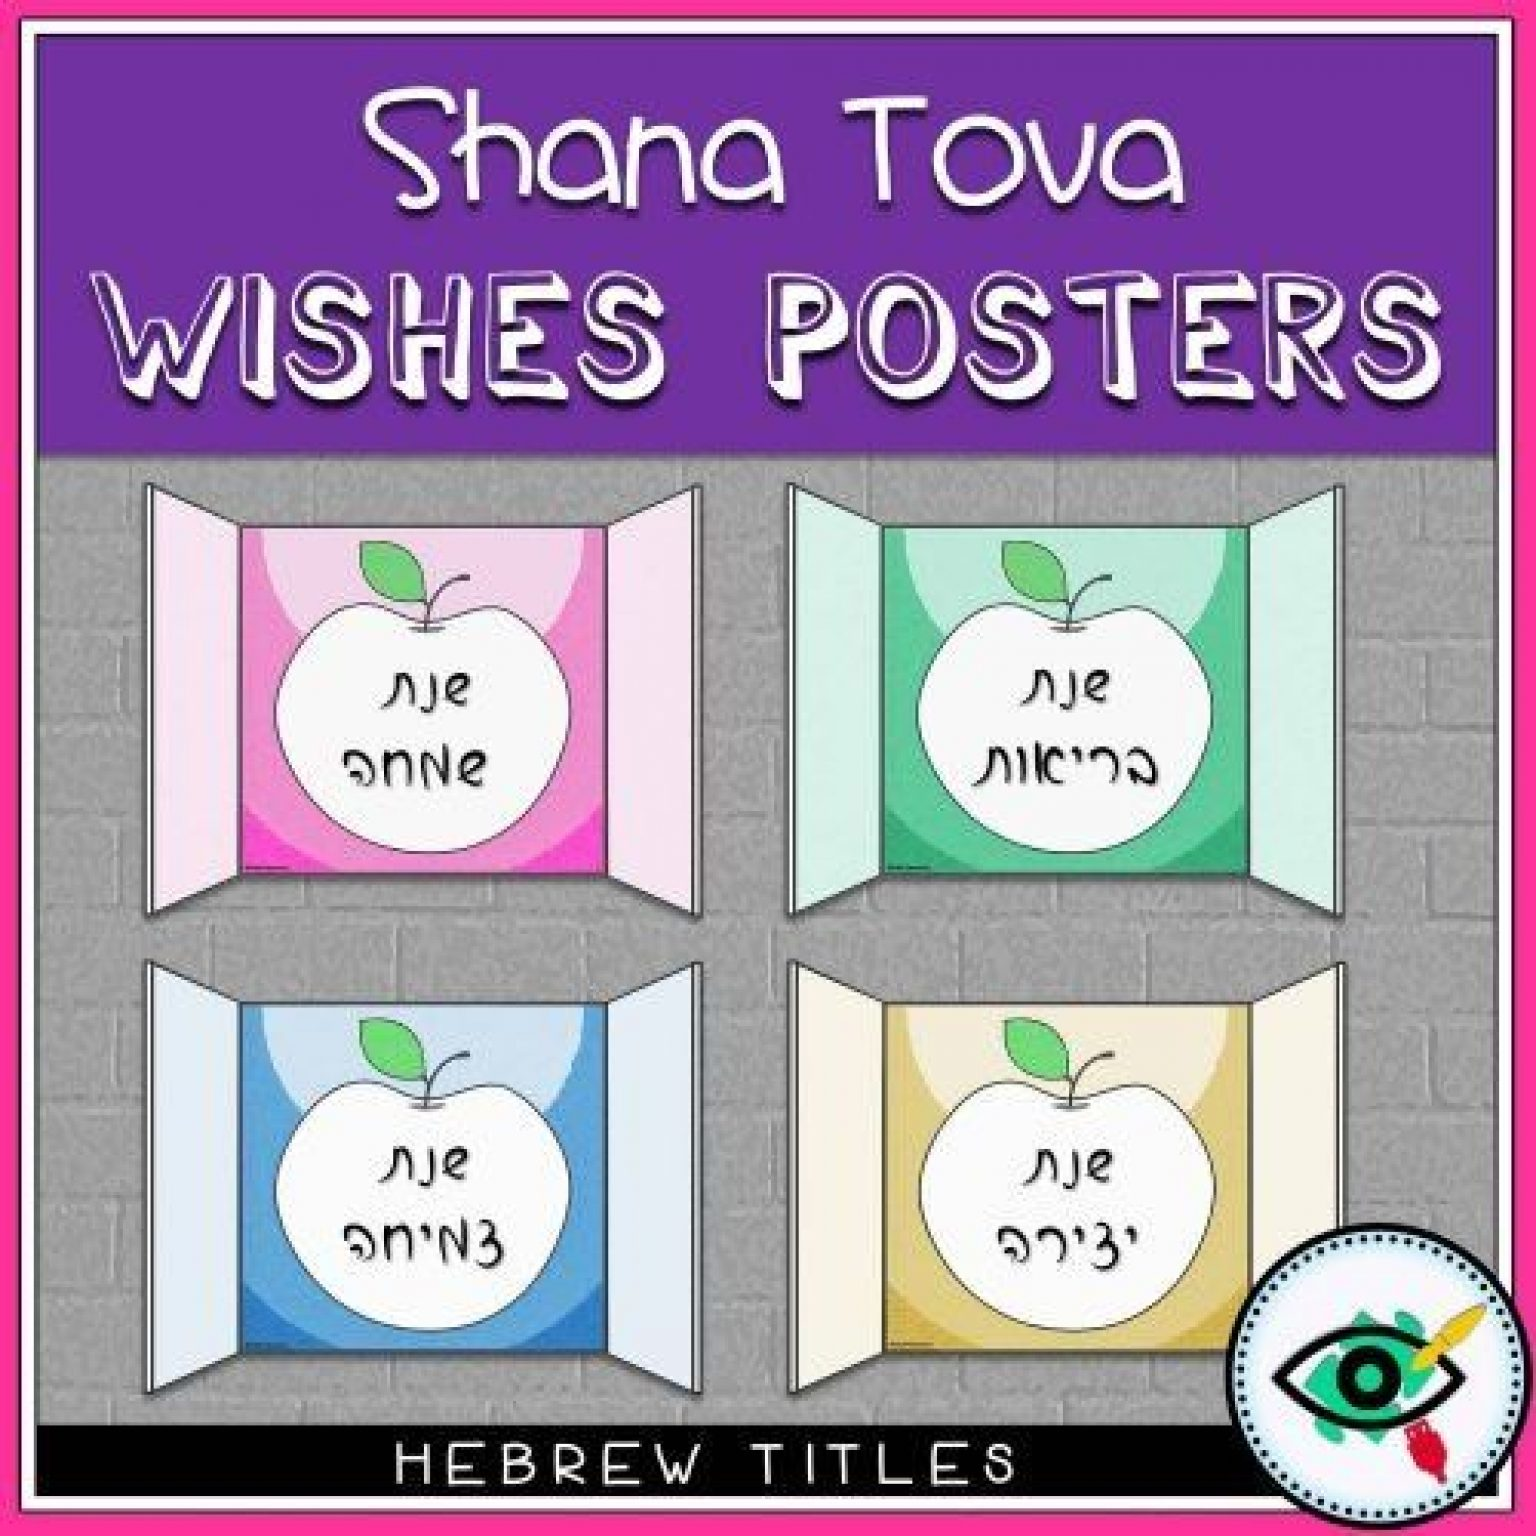 apples-in-window-wishes-posters-hebrew-title